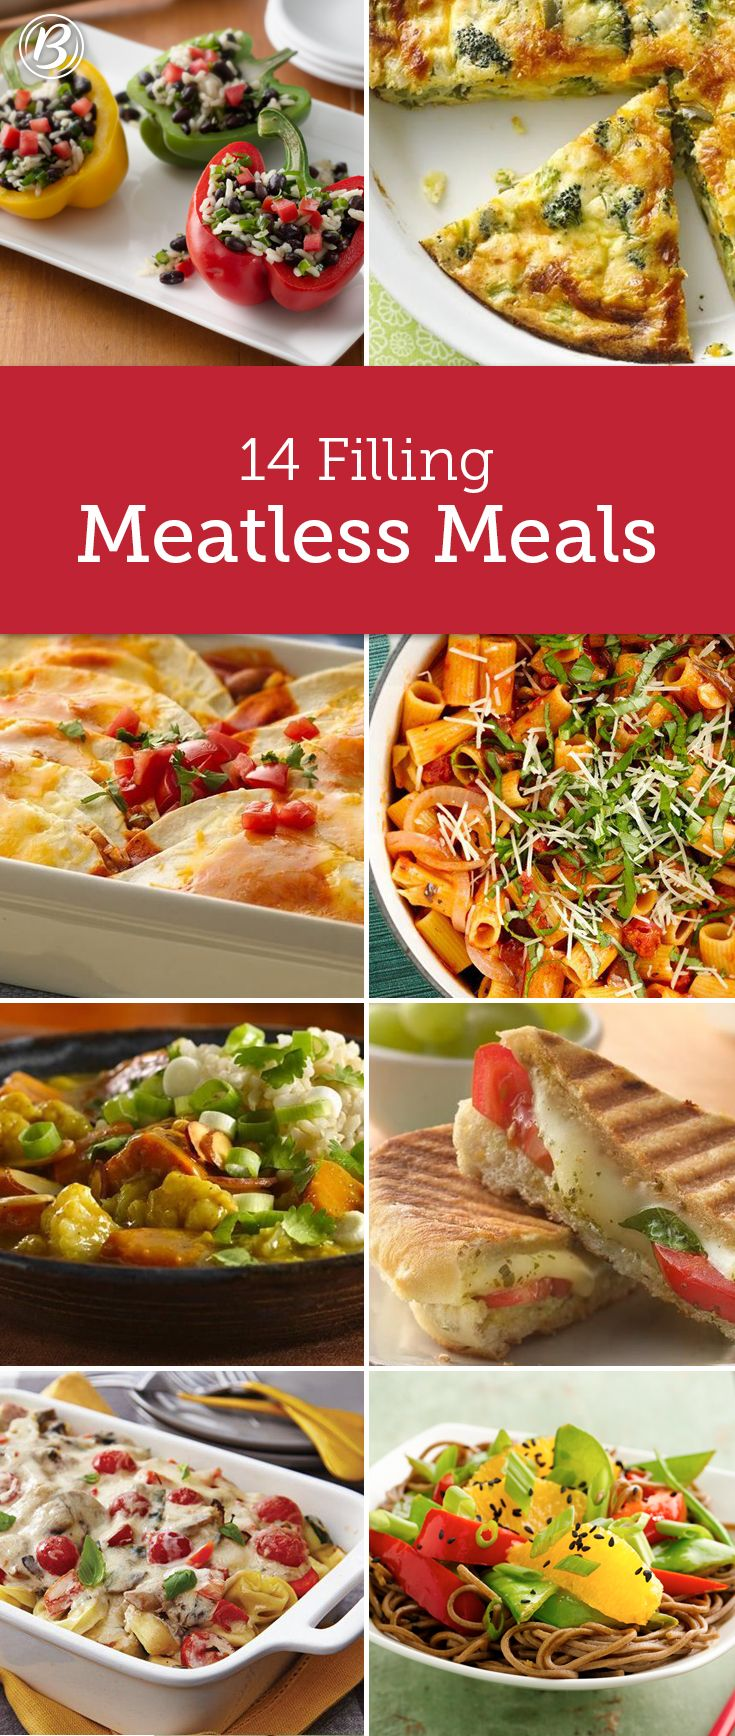 14 Filling Meatless Meal Ideas Meals Without Meat Meat Free Recipes Vegetarian Vegan Recipes